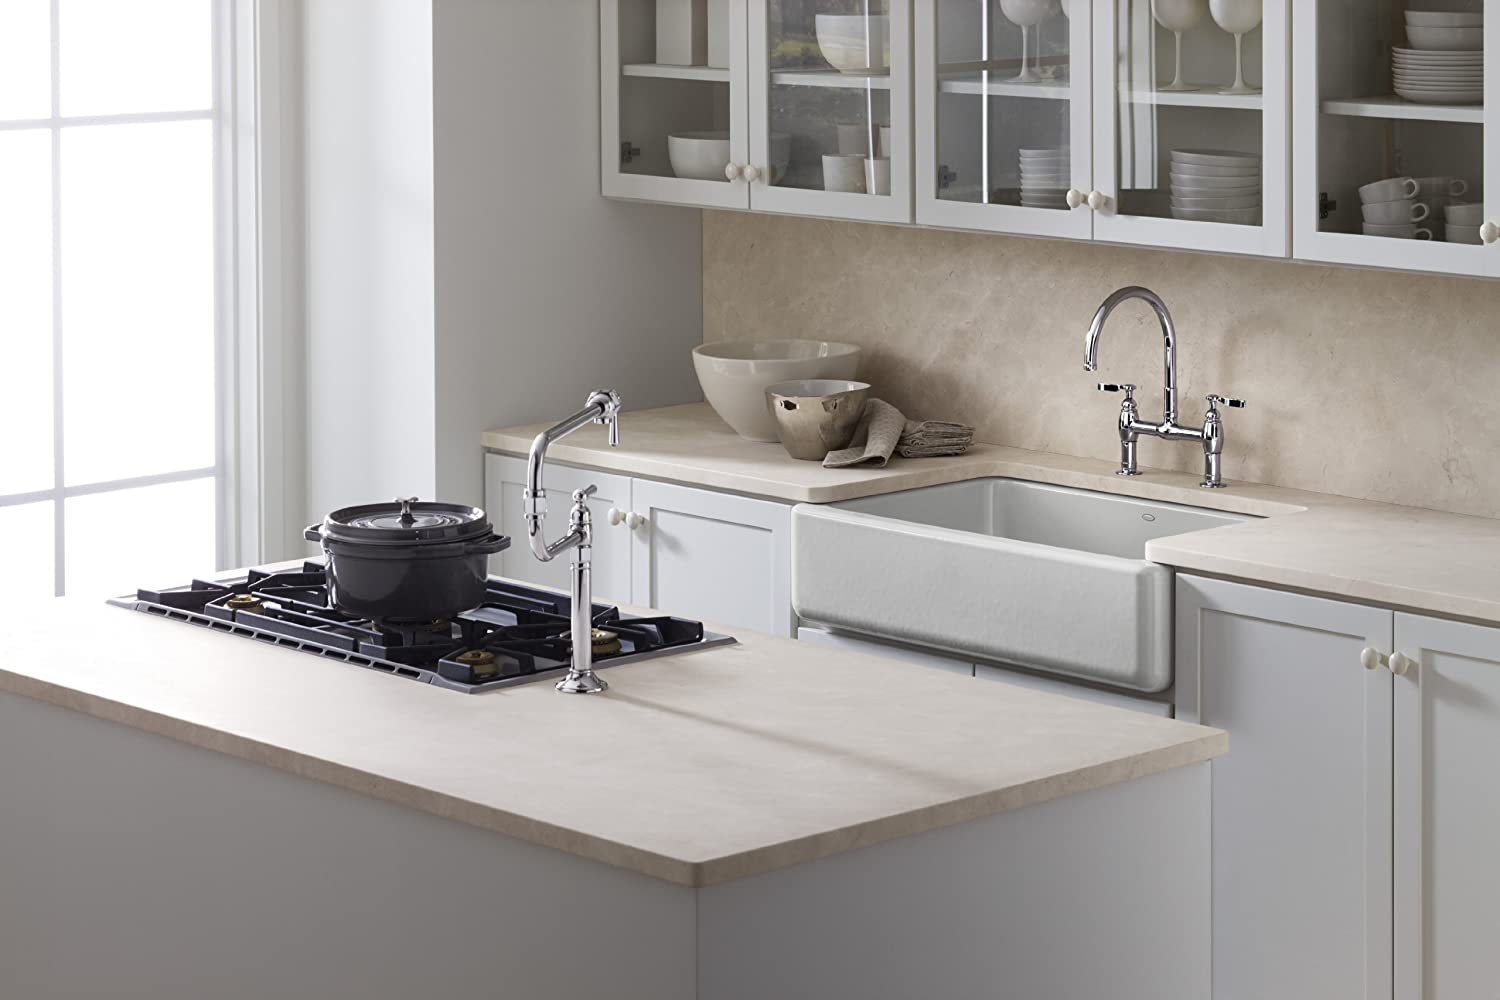 KOHLER K 6489 47 Whitehaven Self Trimming Apron Front Single Basin Sink  With Tall Apron, Almond     Amazon.com